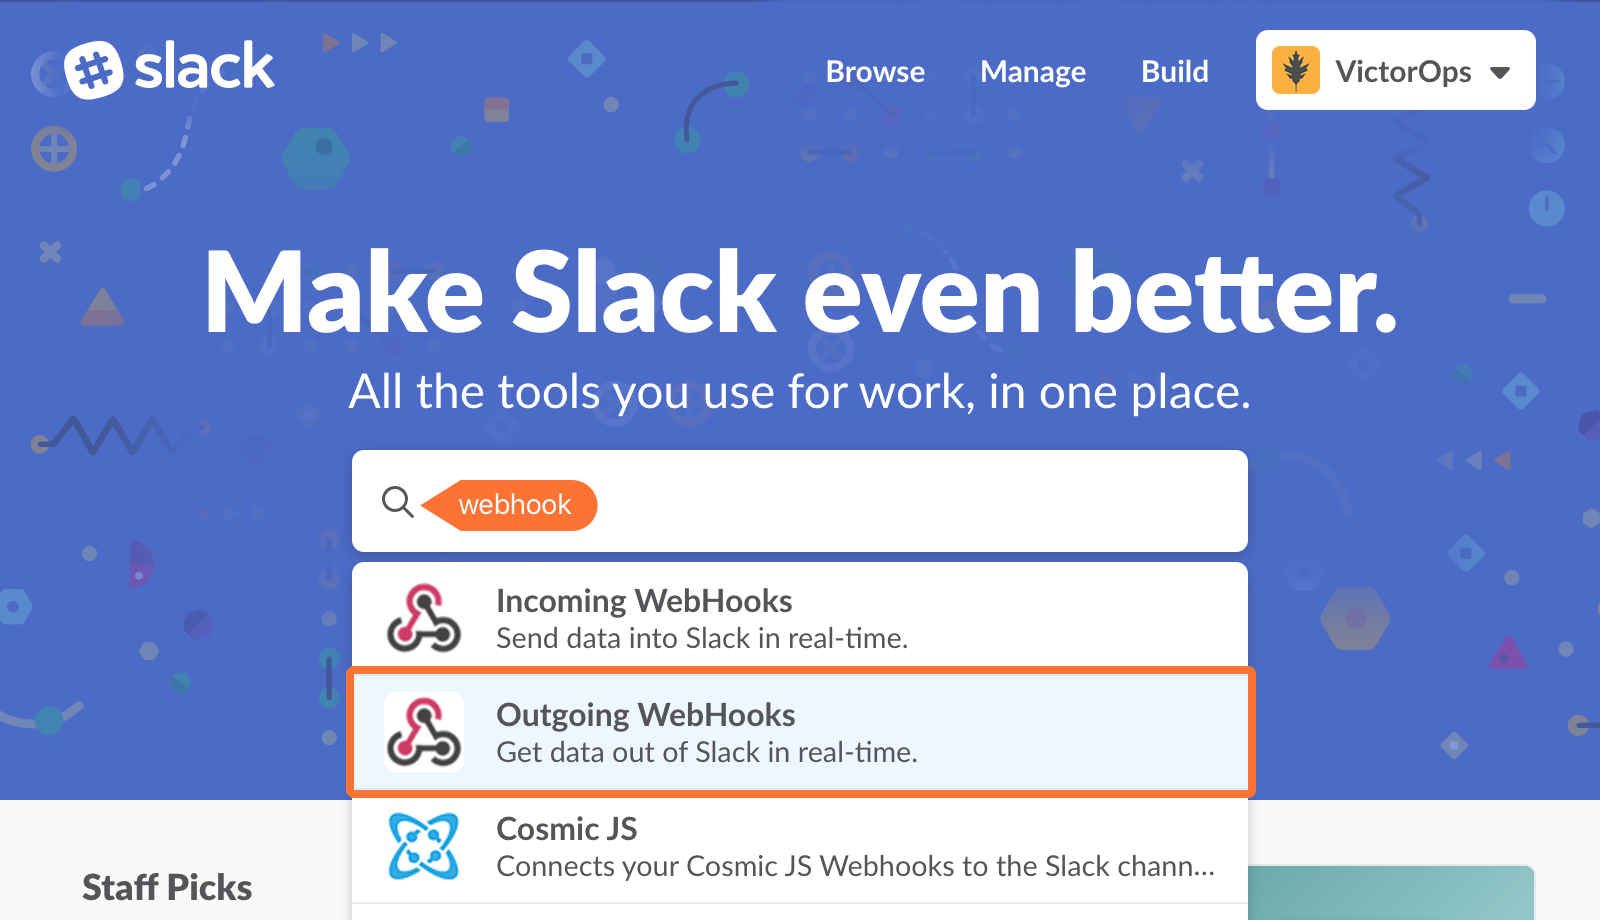 Select Outgoing WebHooks.